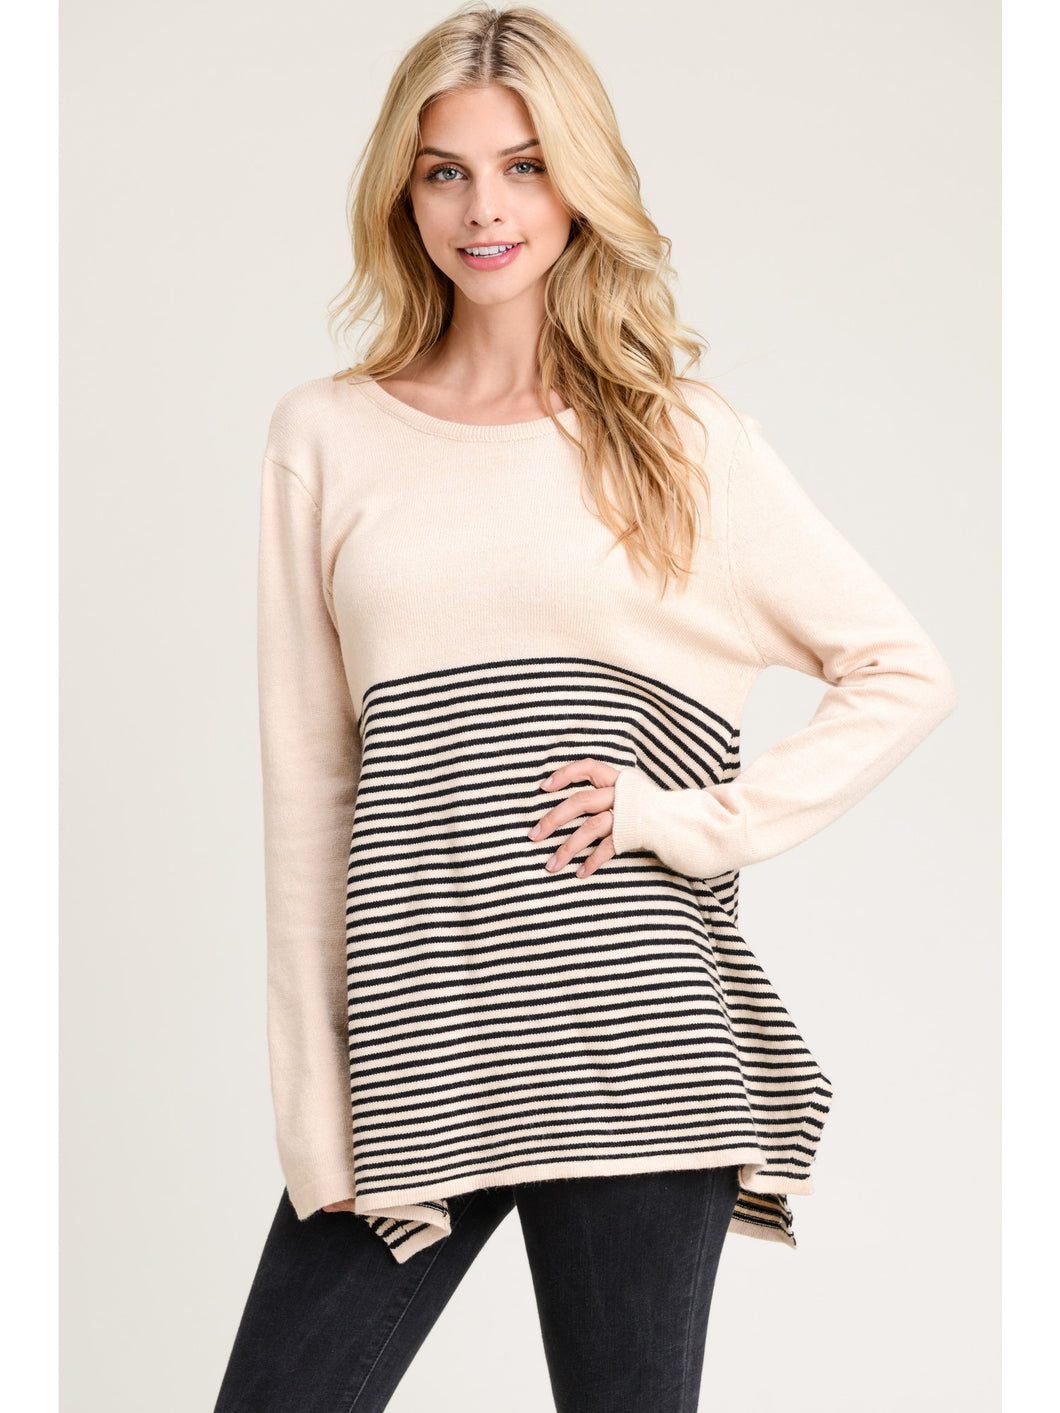 McKenna Long Sleeve Striped Sweater